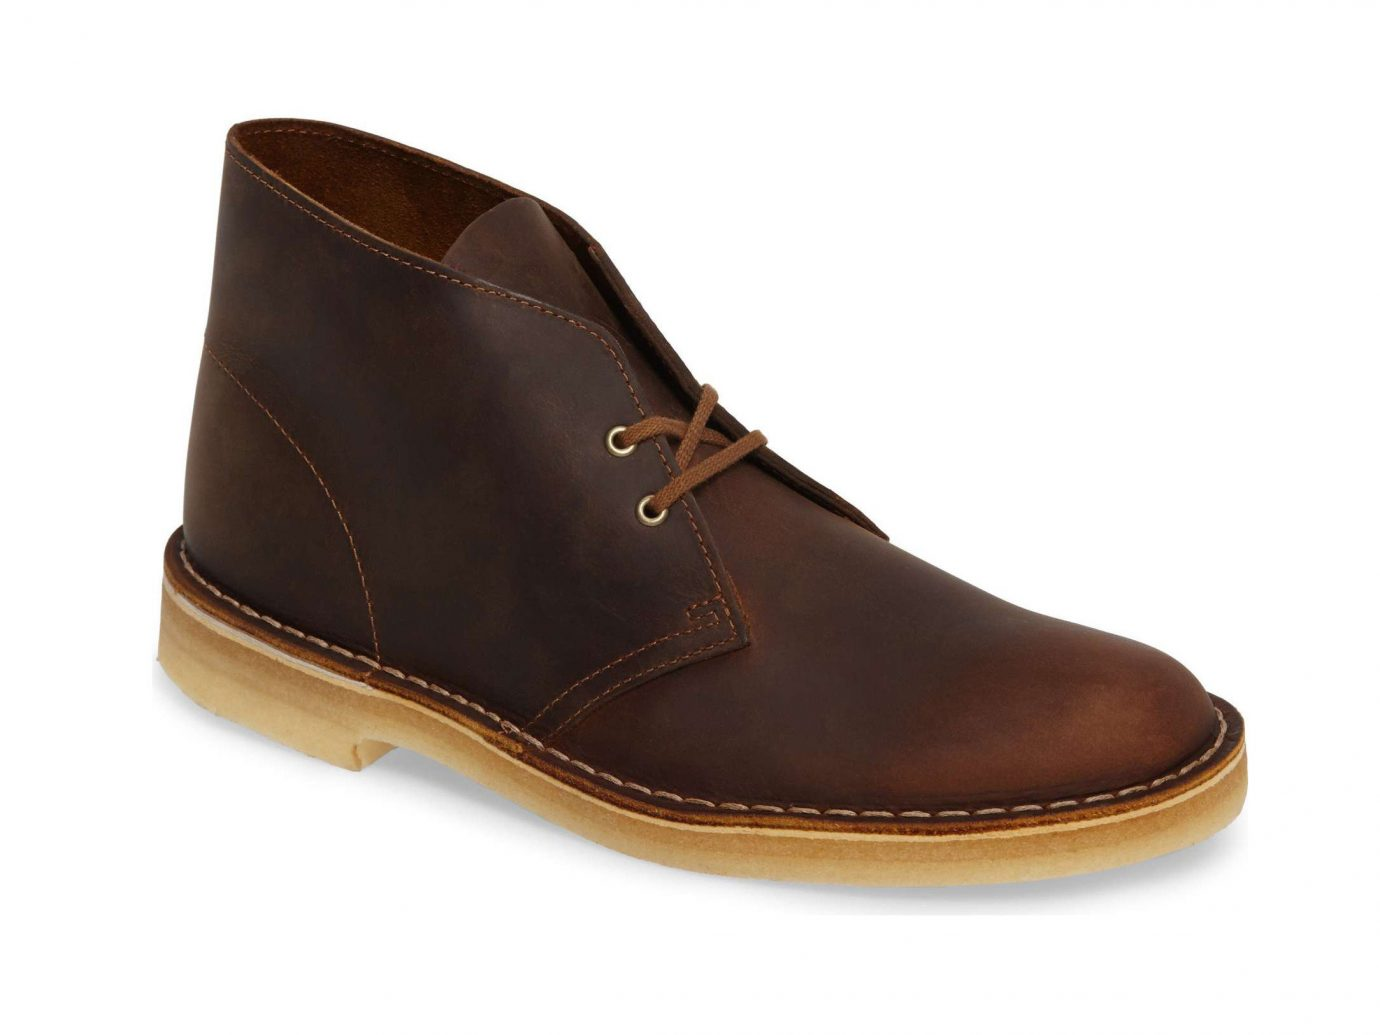 Style + Design Travel Shop footwear brown boot shoe work boots product leather walking shoe suede